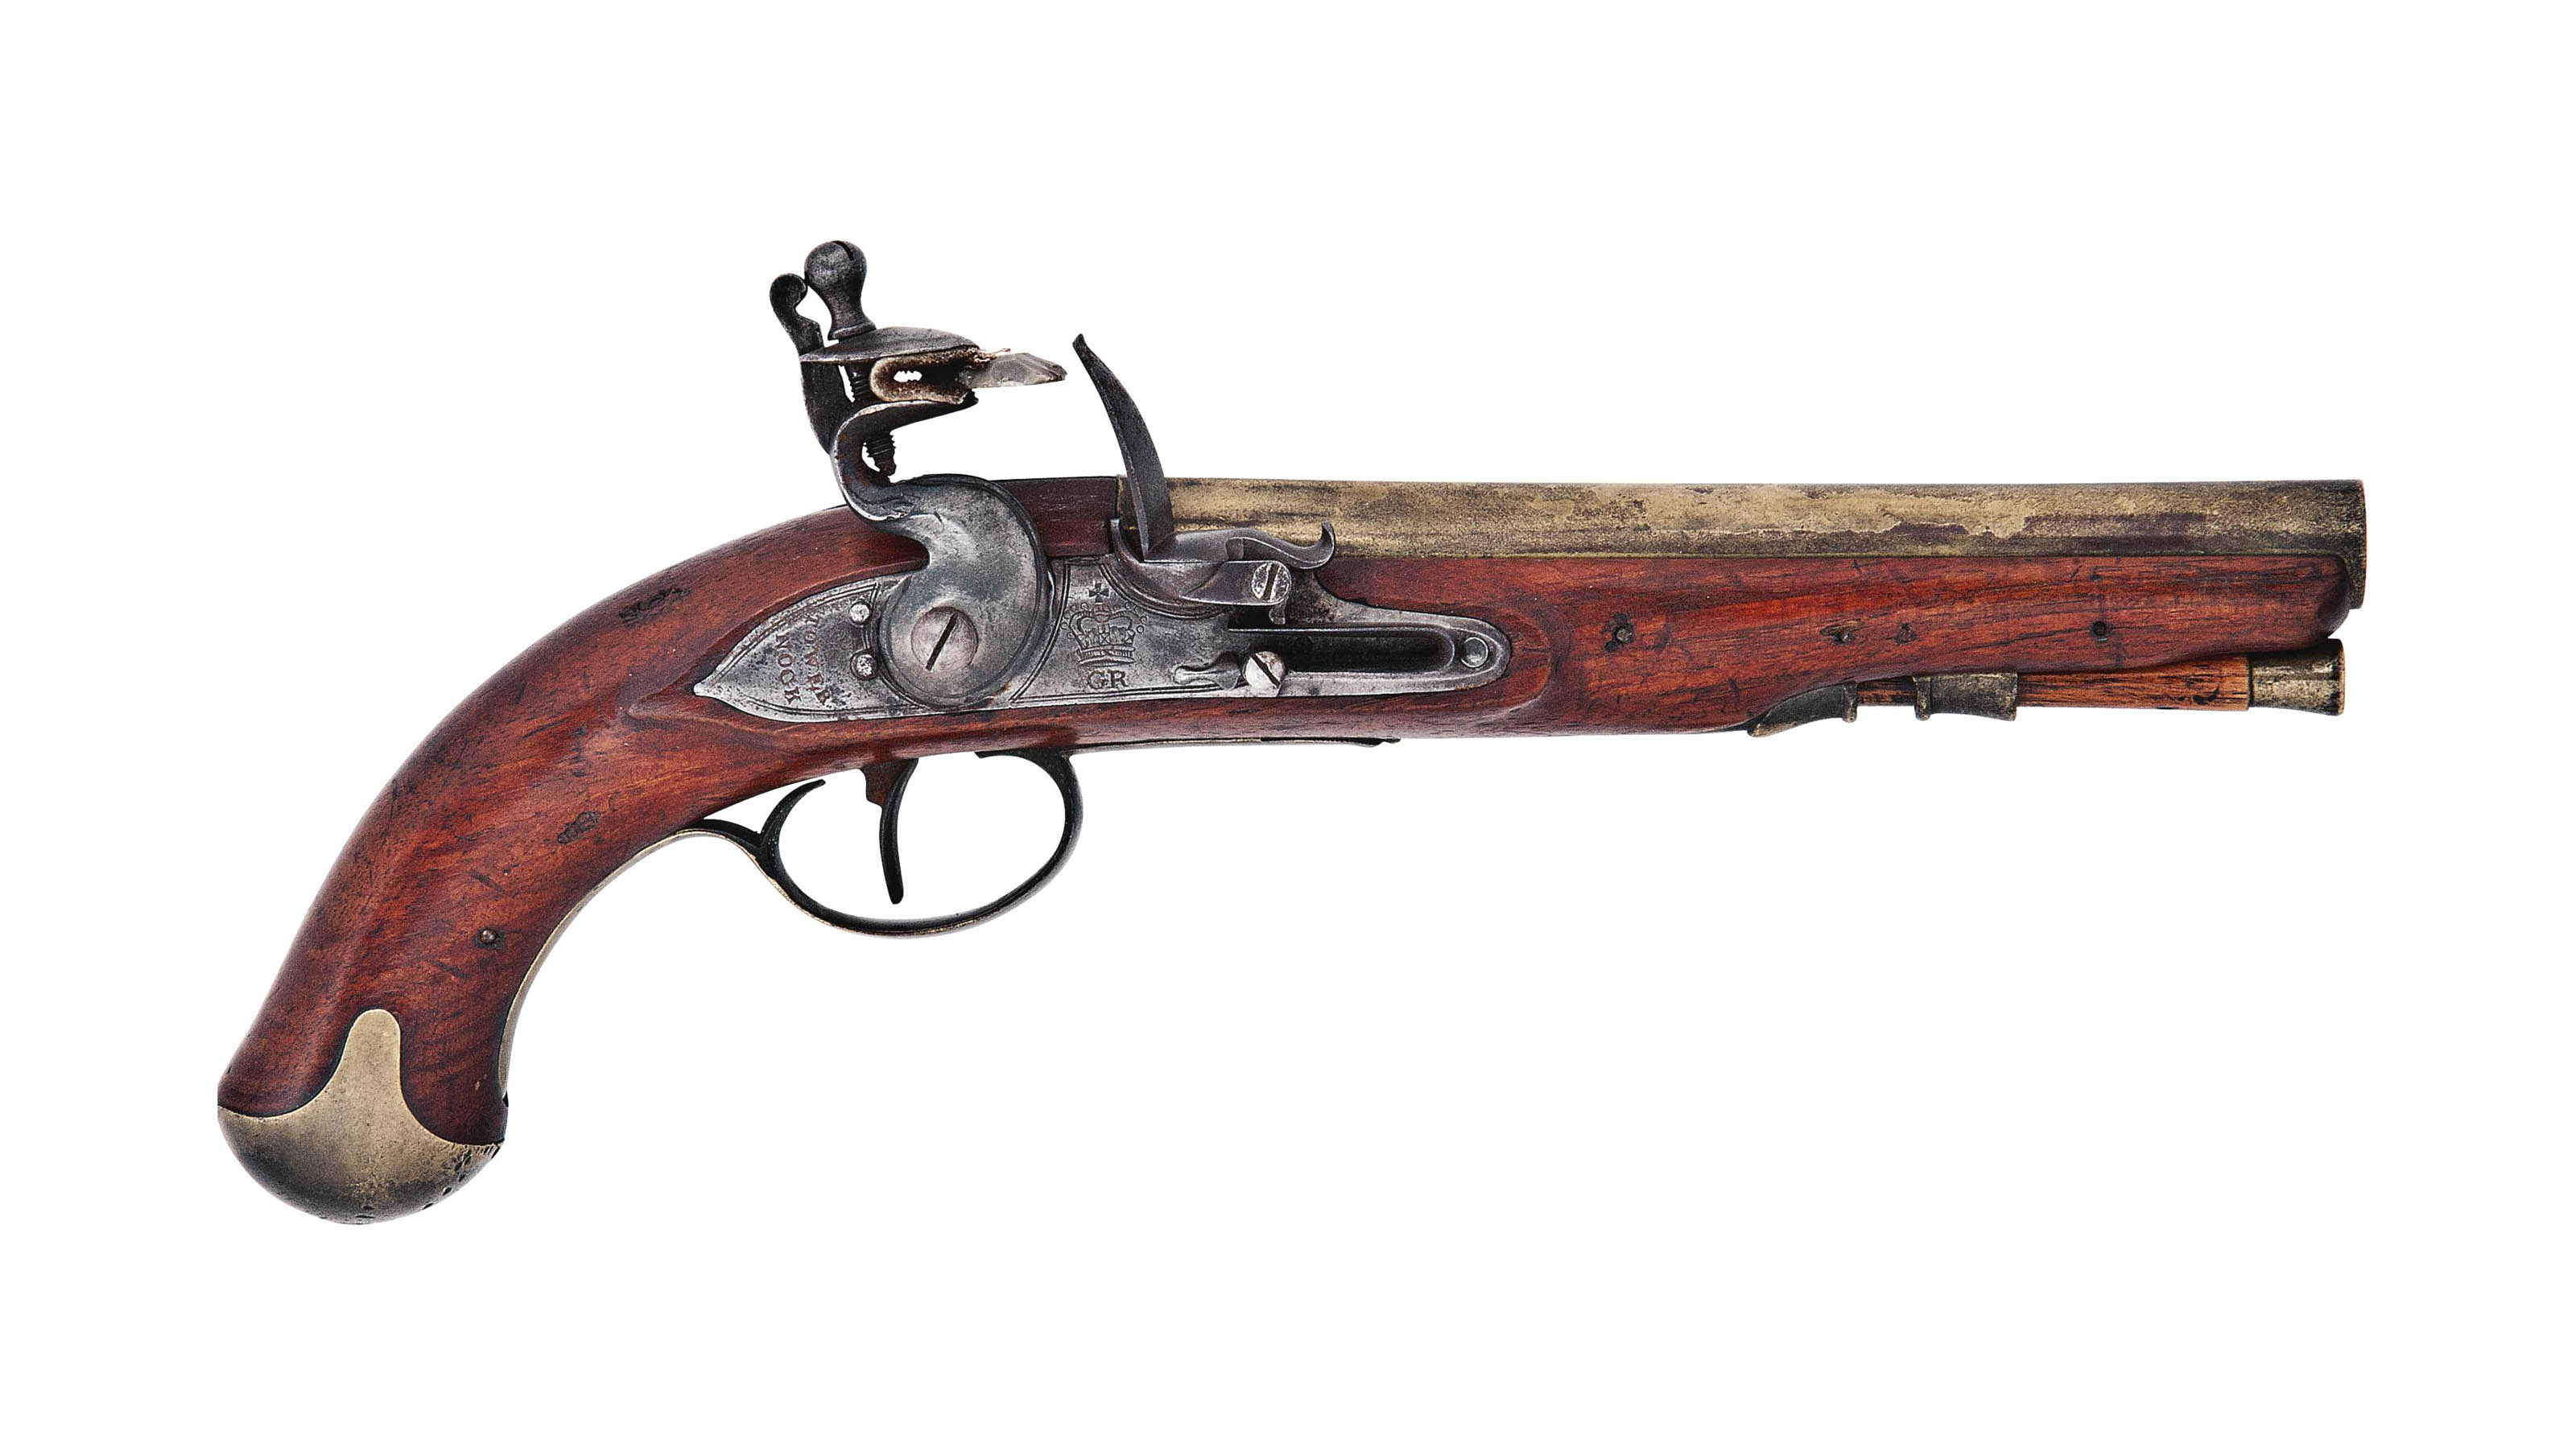 A RARE 25-BORE BRASS-BARRELLED FLINTLOCK SERVICE PISTOL DESIGNED FOR PHILIP D'AUVERGNE, PRINCE OF BOUILLON